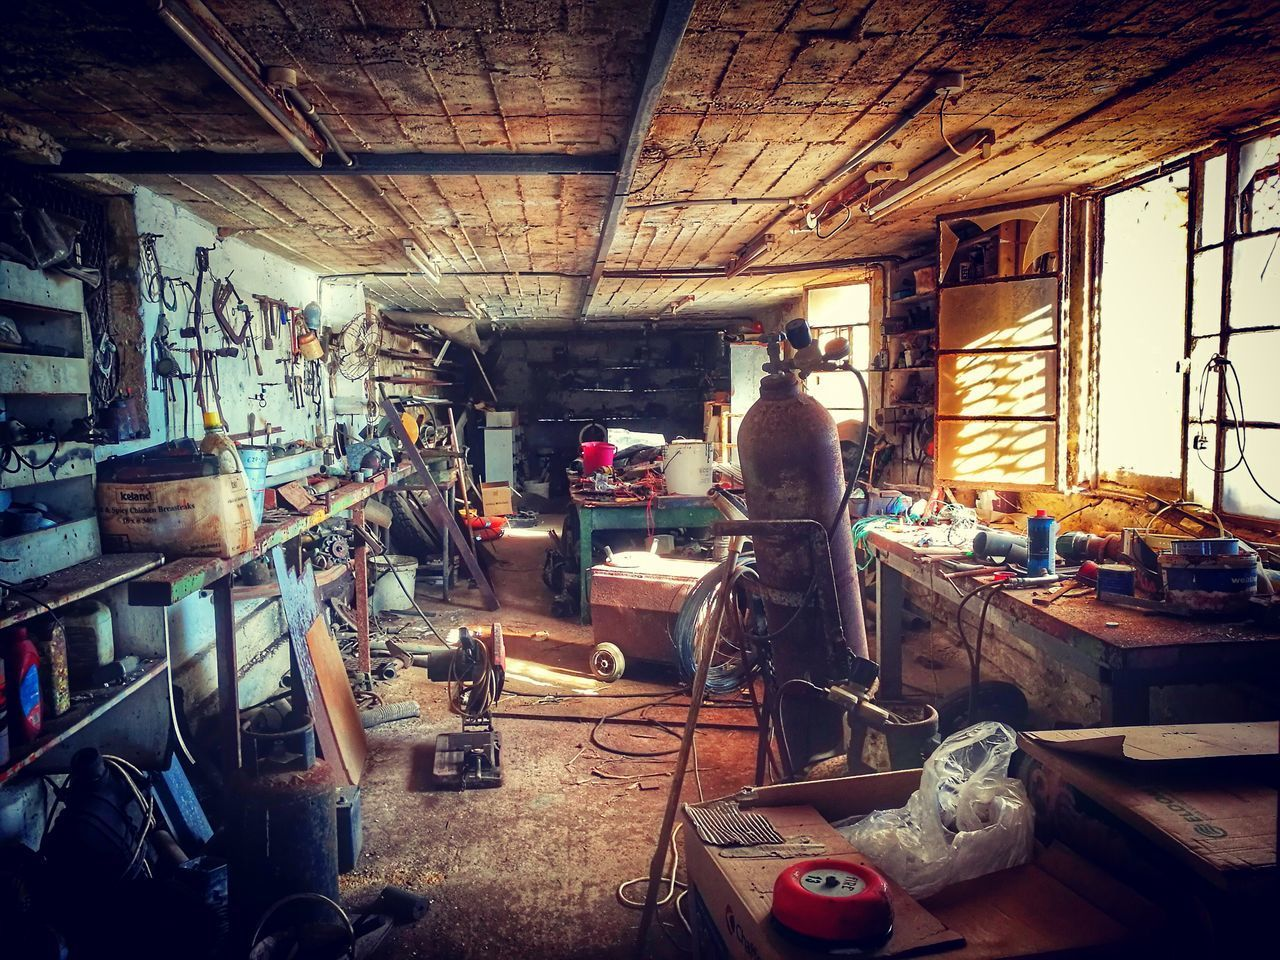 indoors, messy, large group of objects, workshop, window, standing, one person, real people, day, table, old, working, domestic room, container, work tool, abandoned, business, kitchen